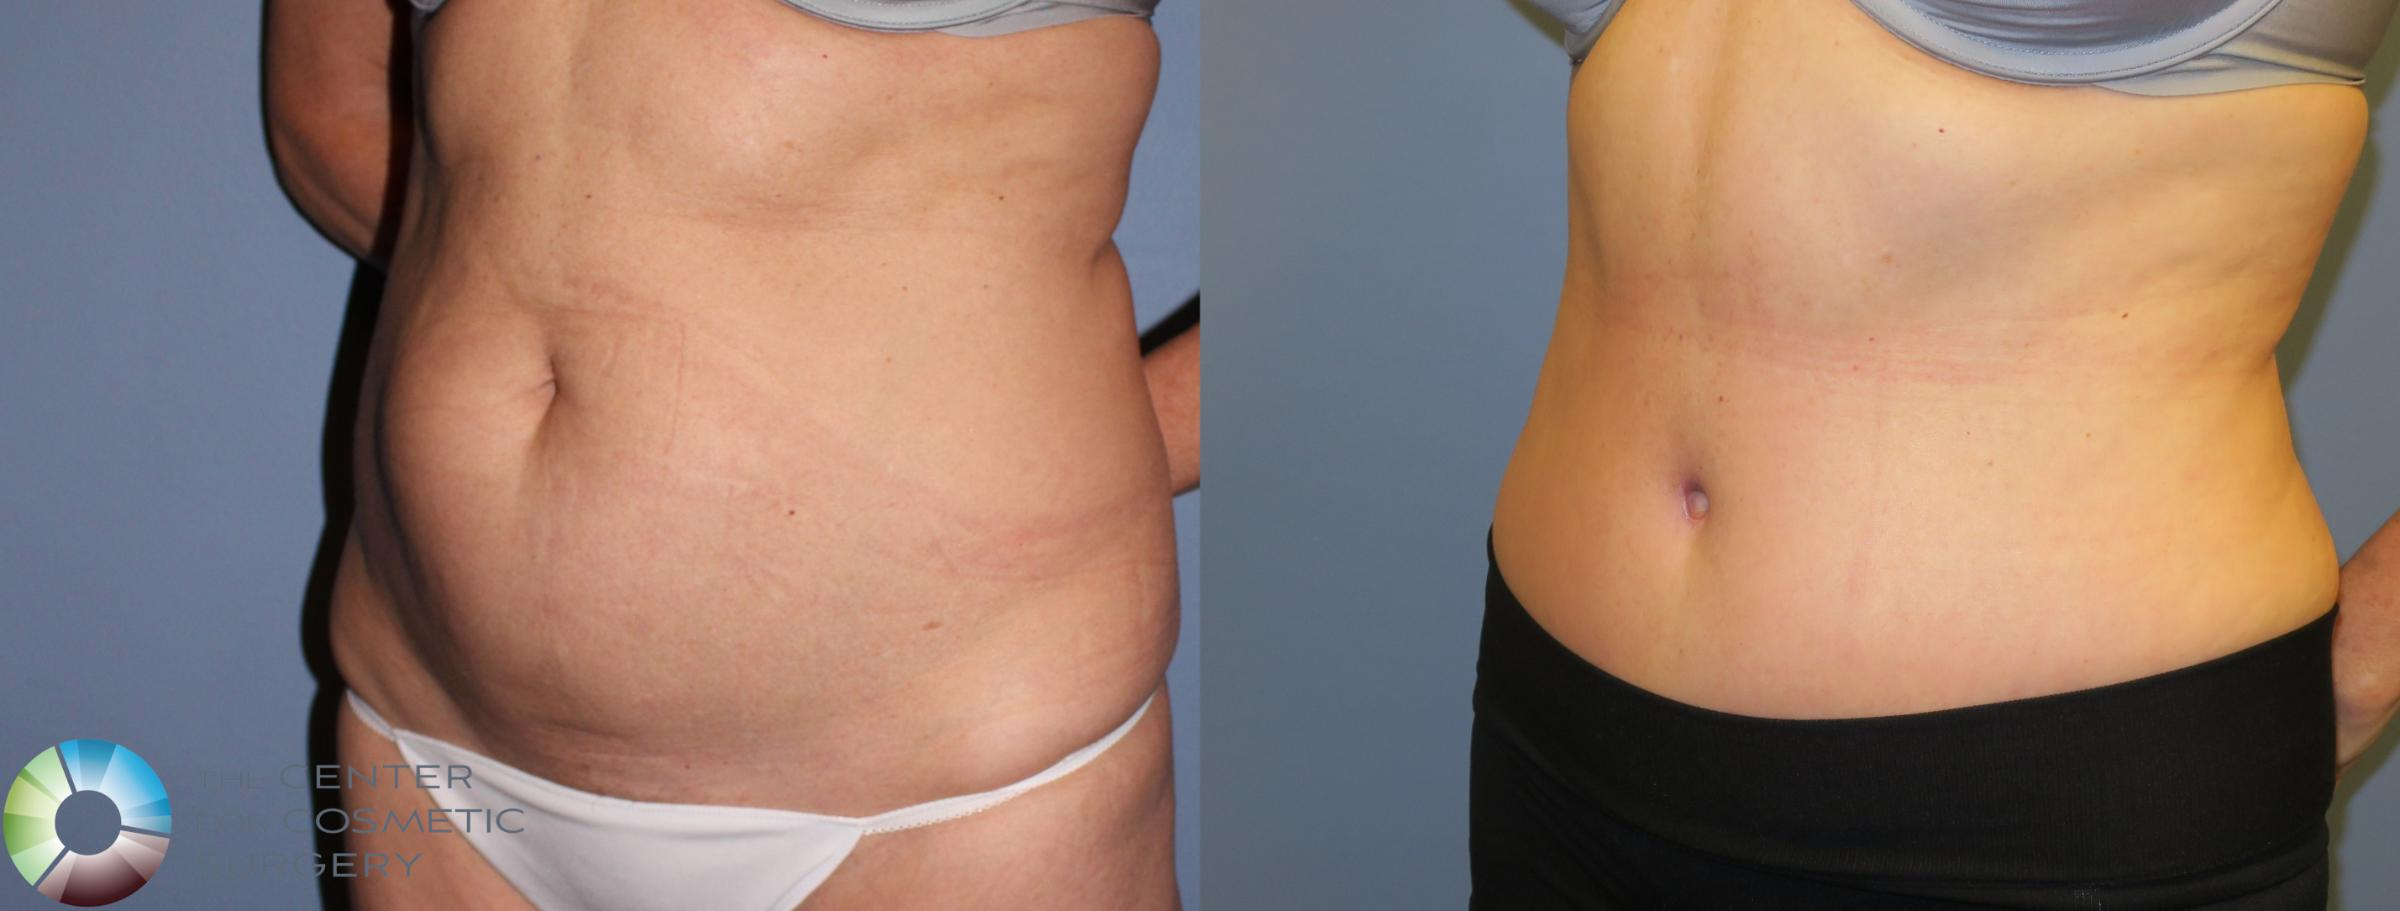 Tummy Tuck Case 853 Before & After View #2 | Golden, CO | The Center for Cosmetic Surgery